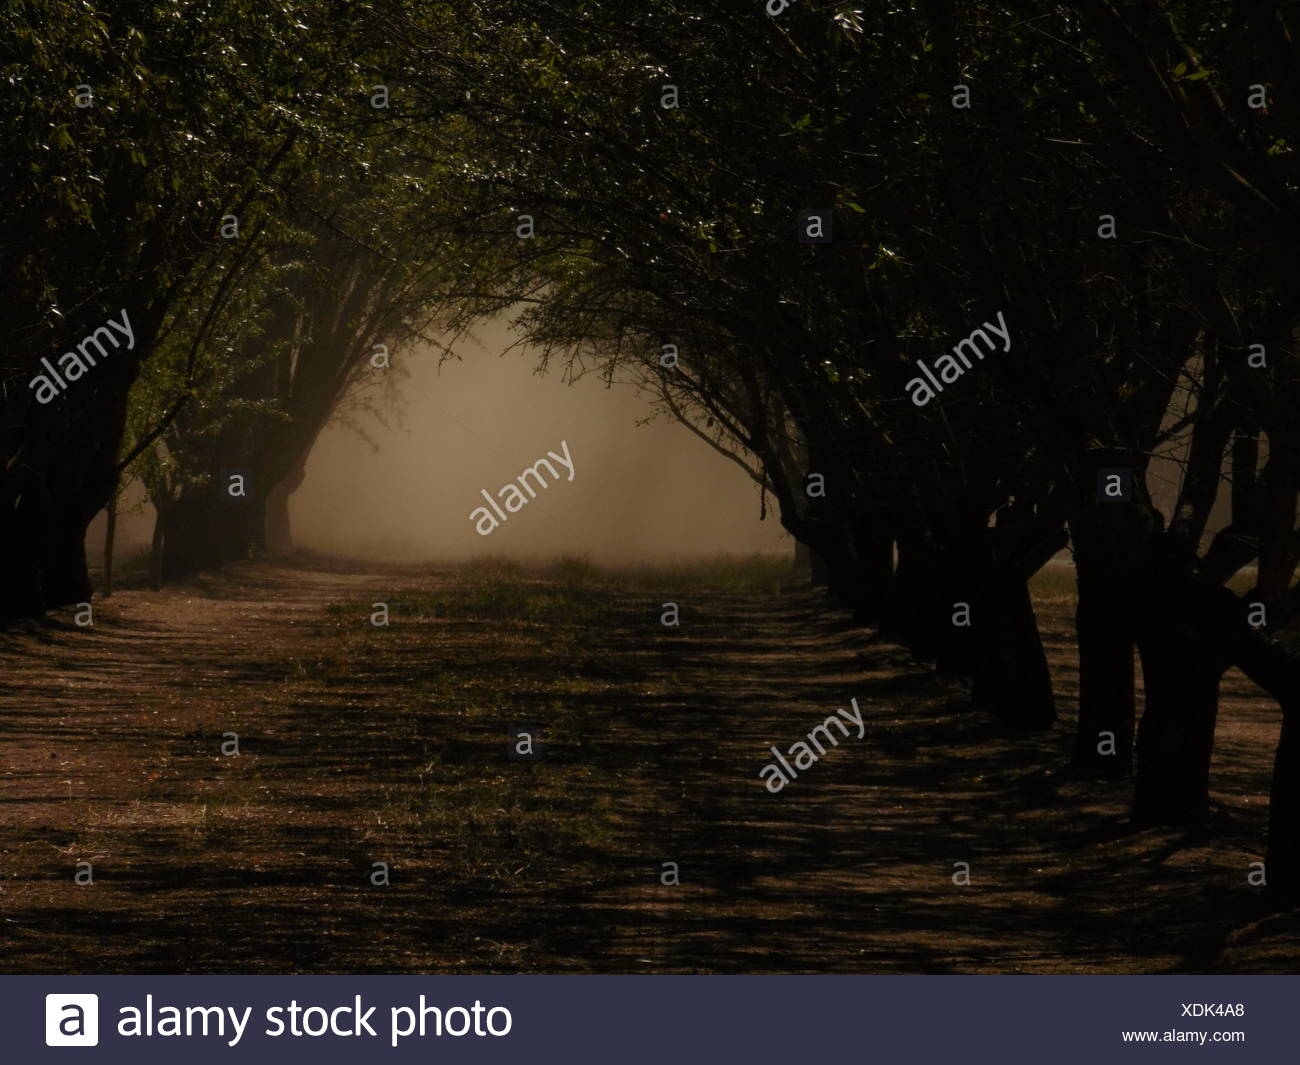 Trees Both Sides Of A Road - Stock Image